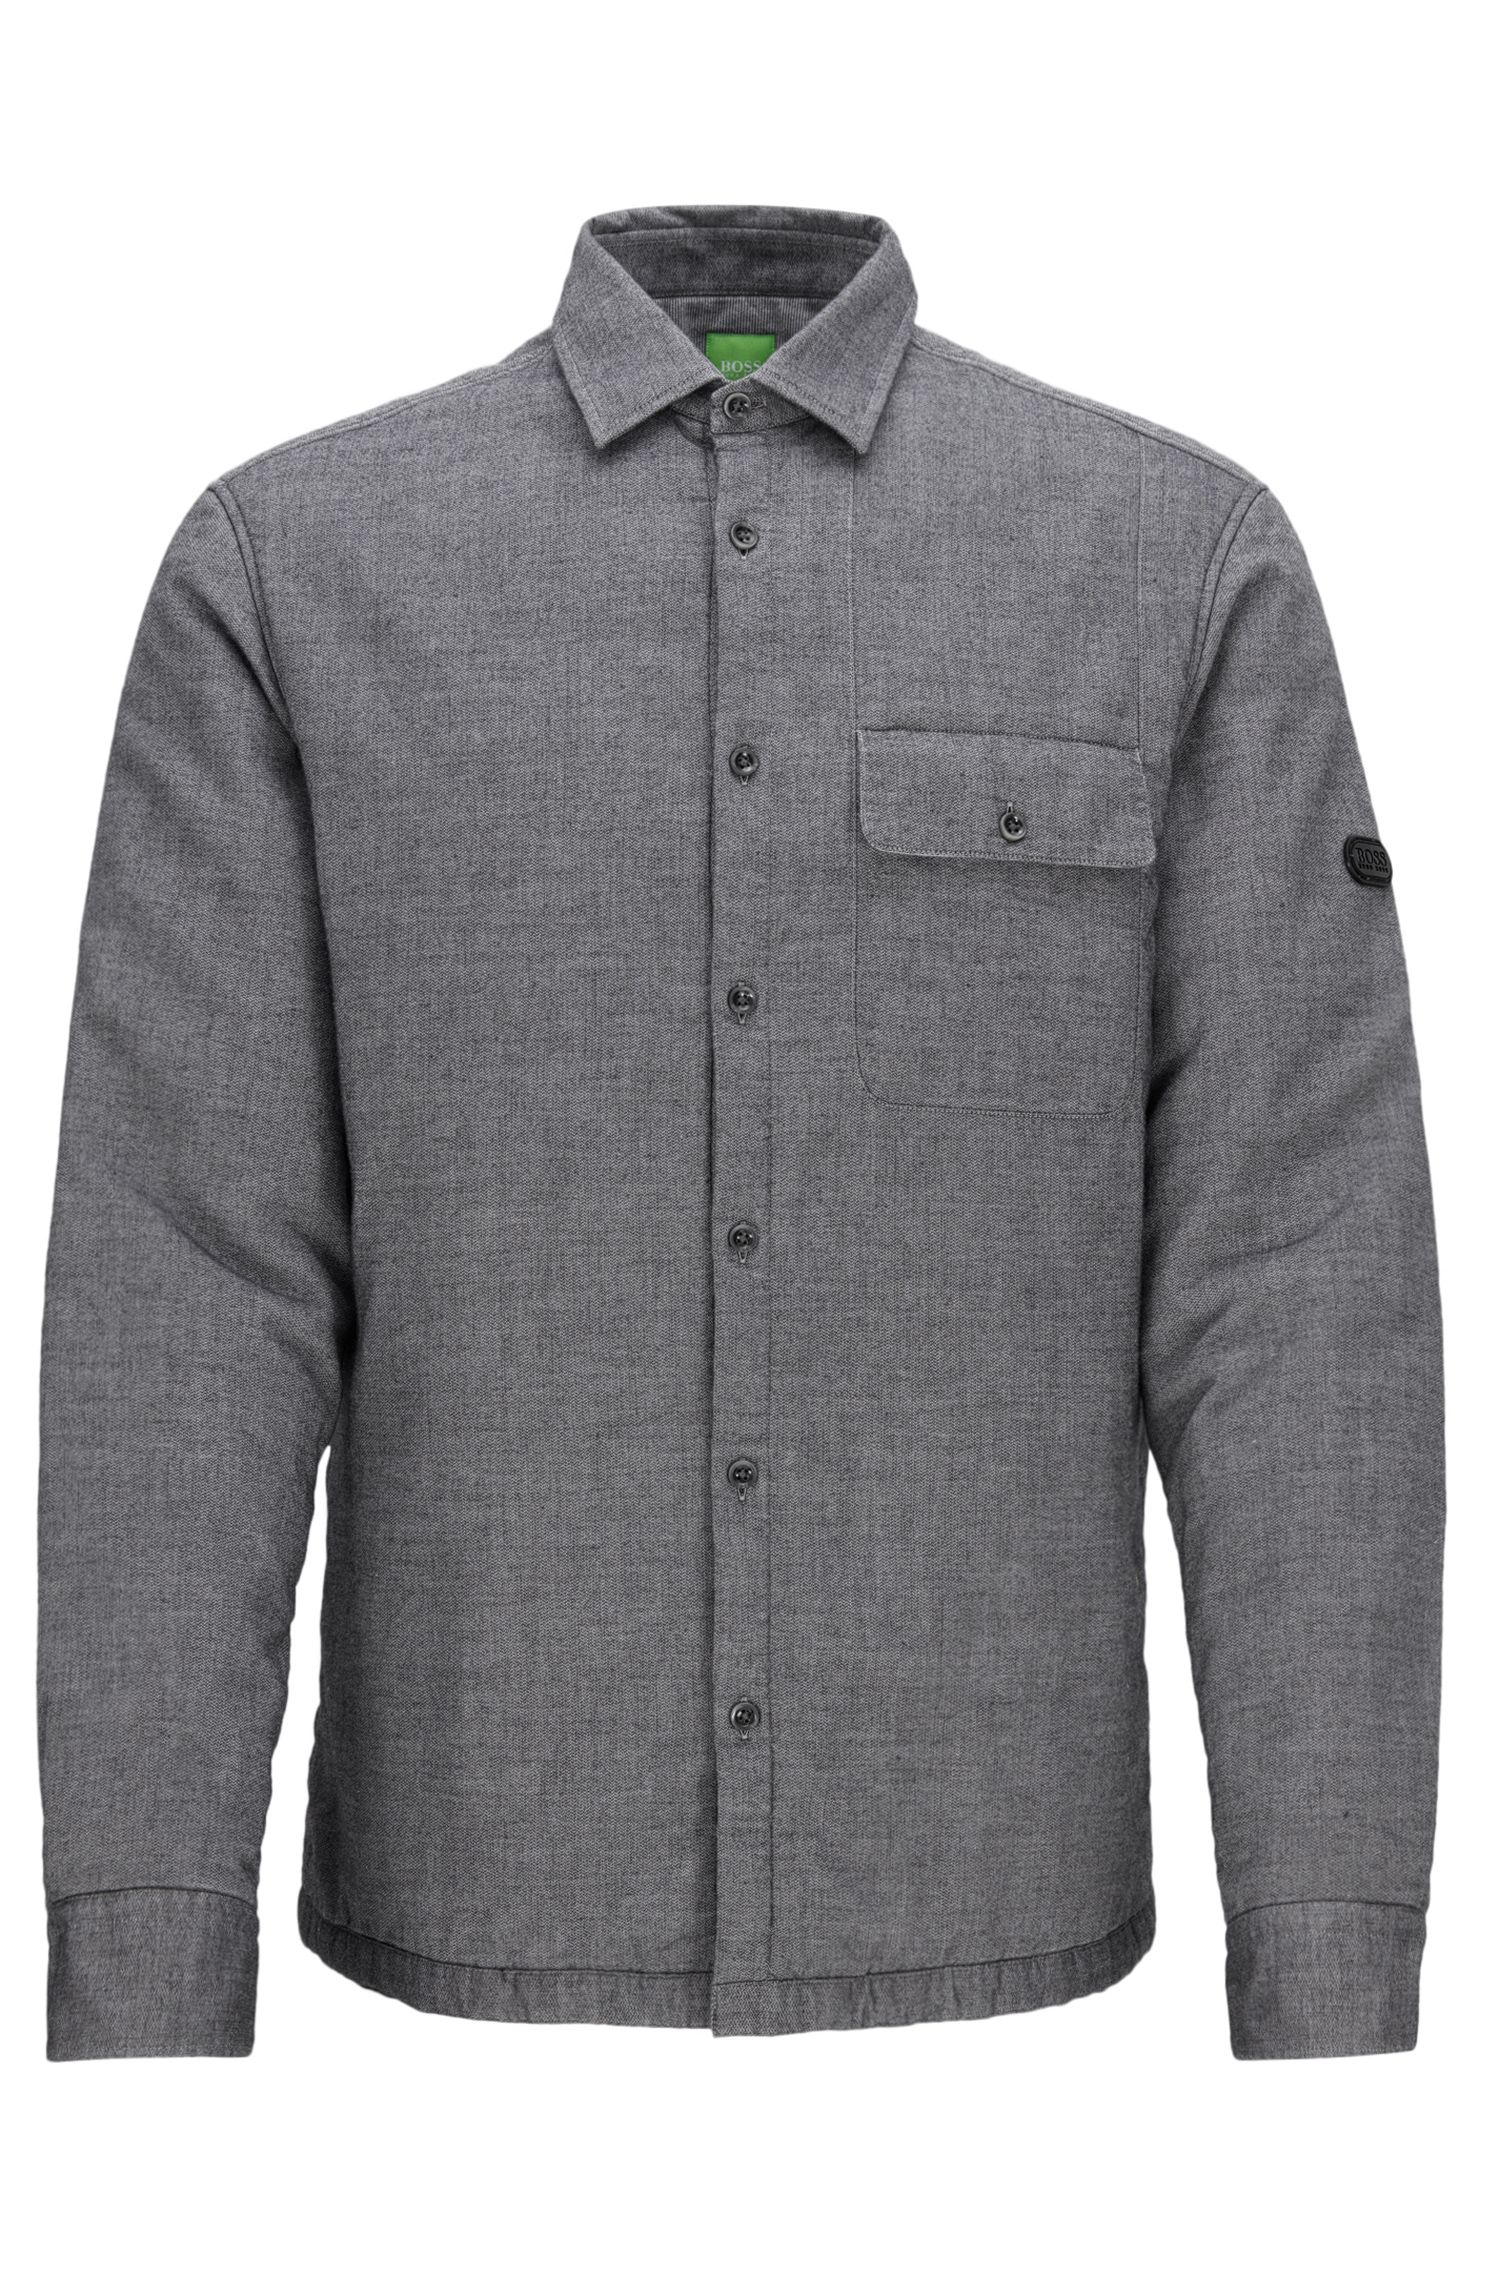 'Baisy' | Relaxed Fit, Garment-Washed Cotton Button Down Shirt, Black